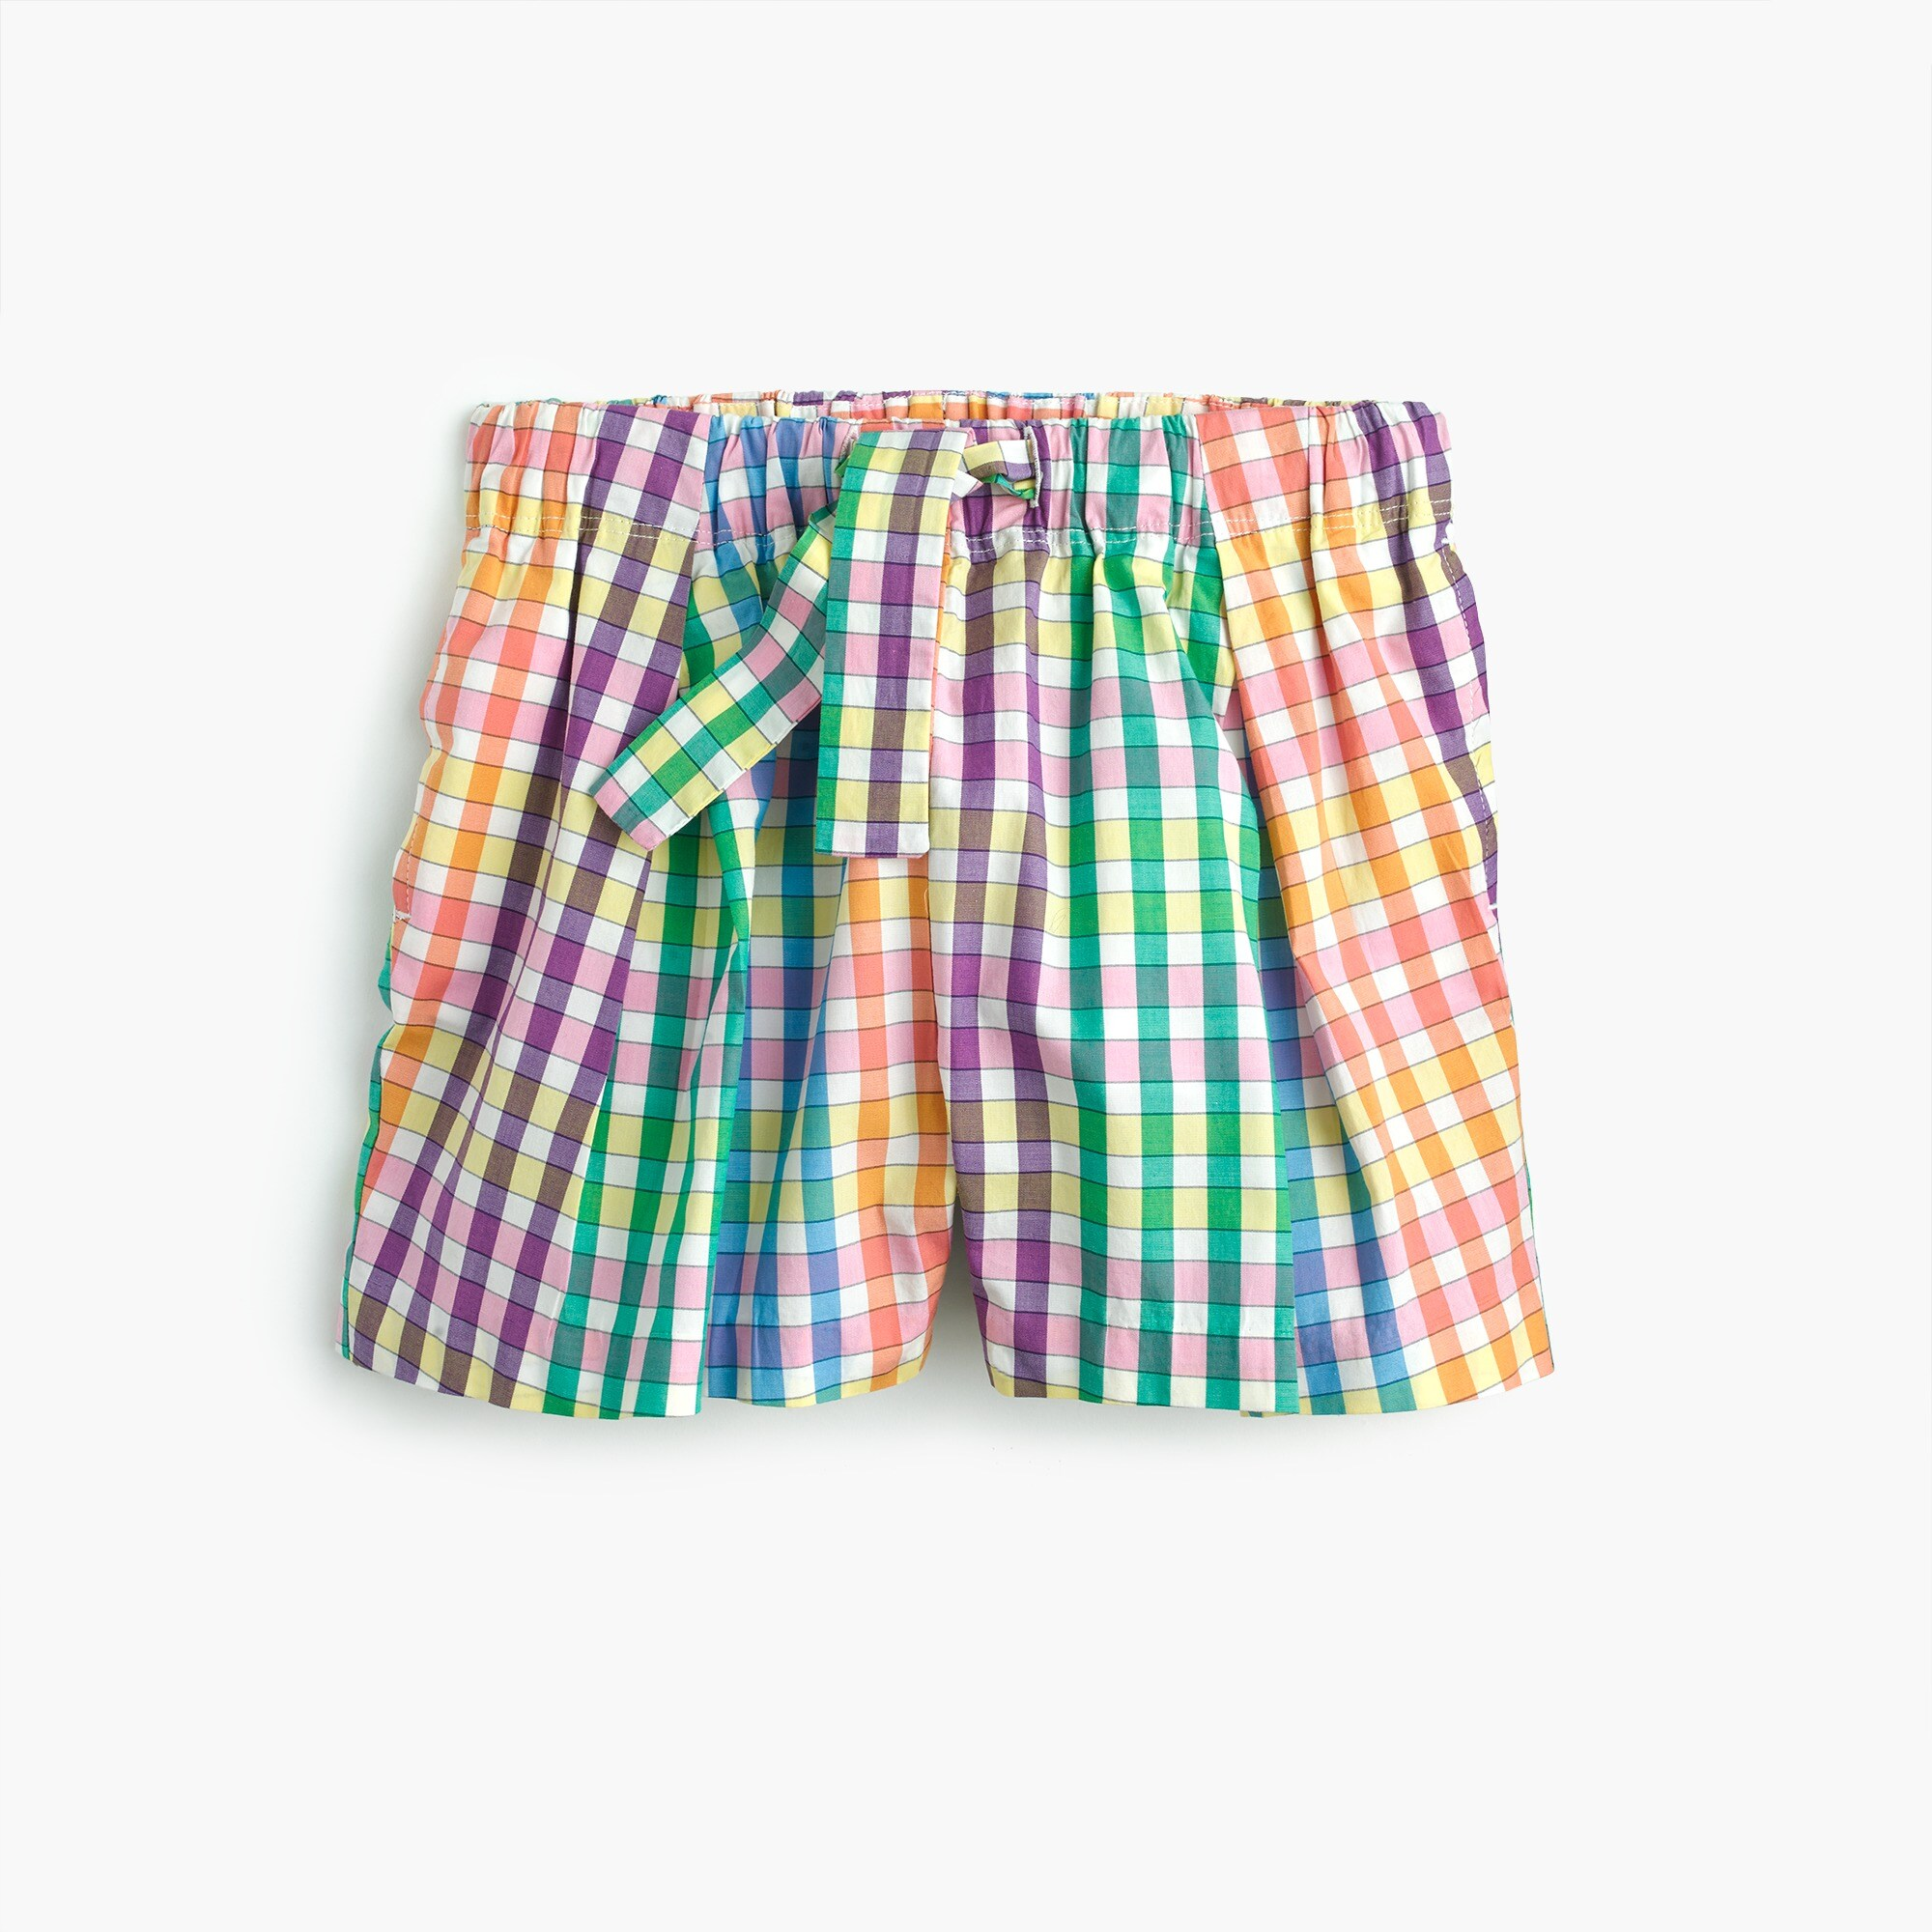 girls' tie-waist pull-on short in rainbow check : girl shorts